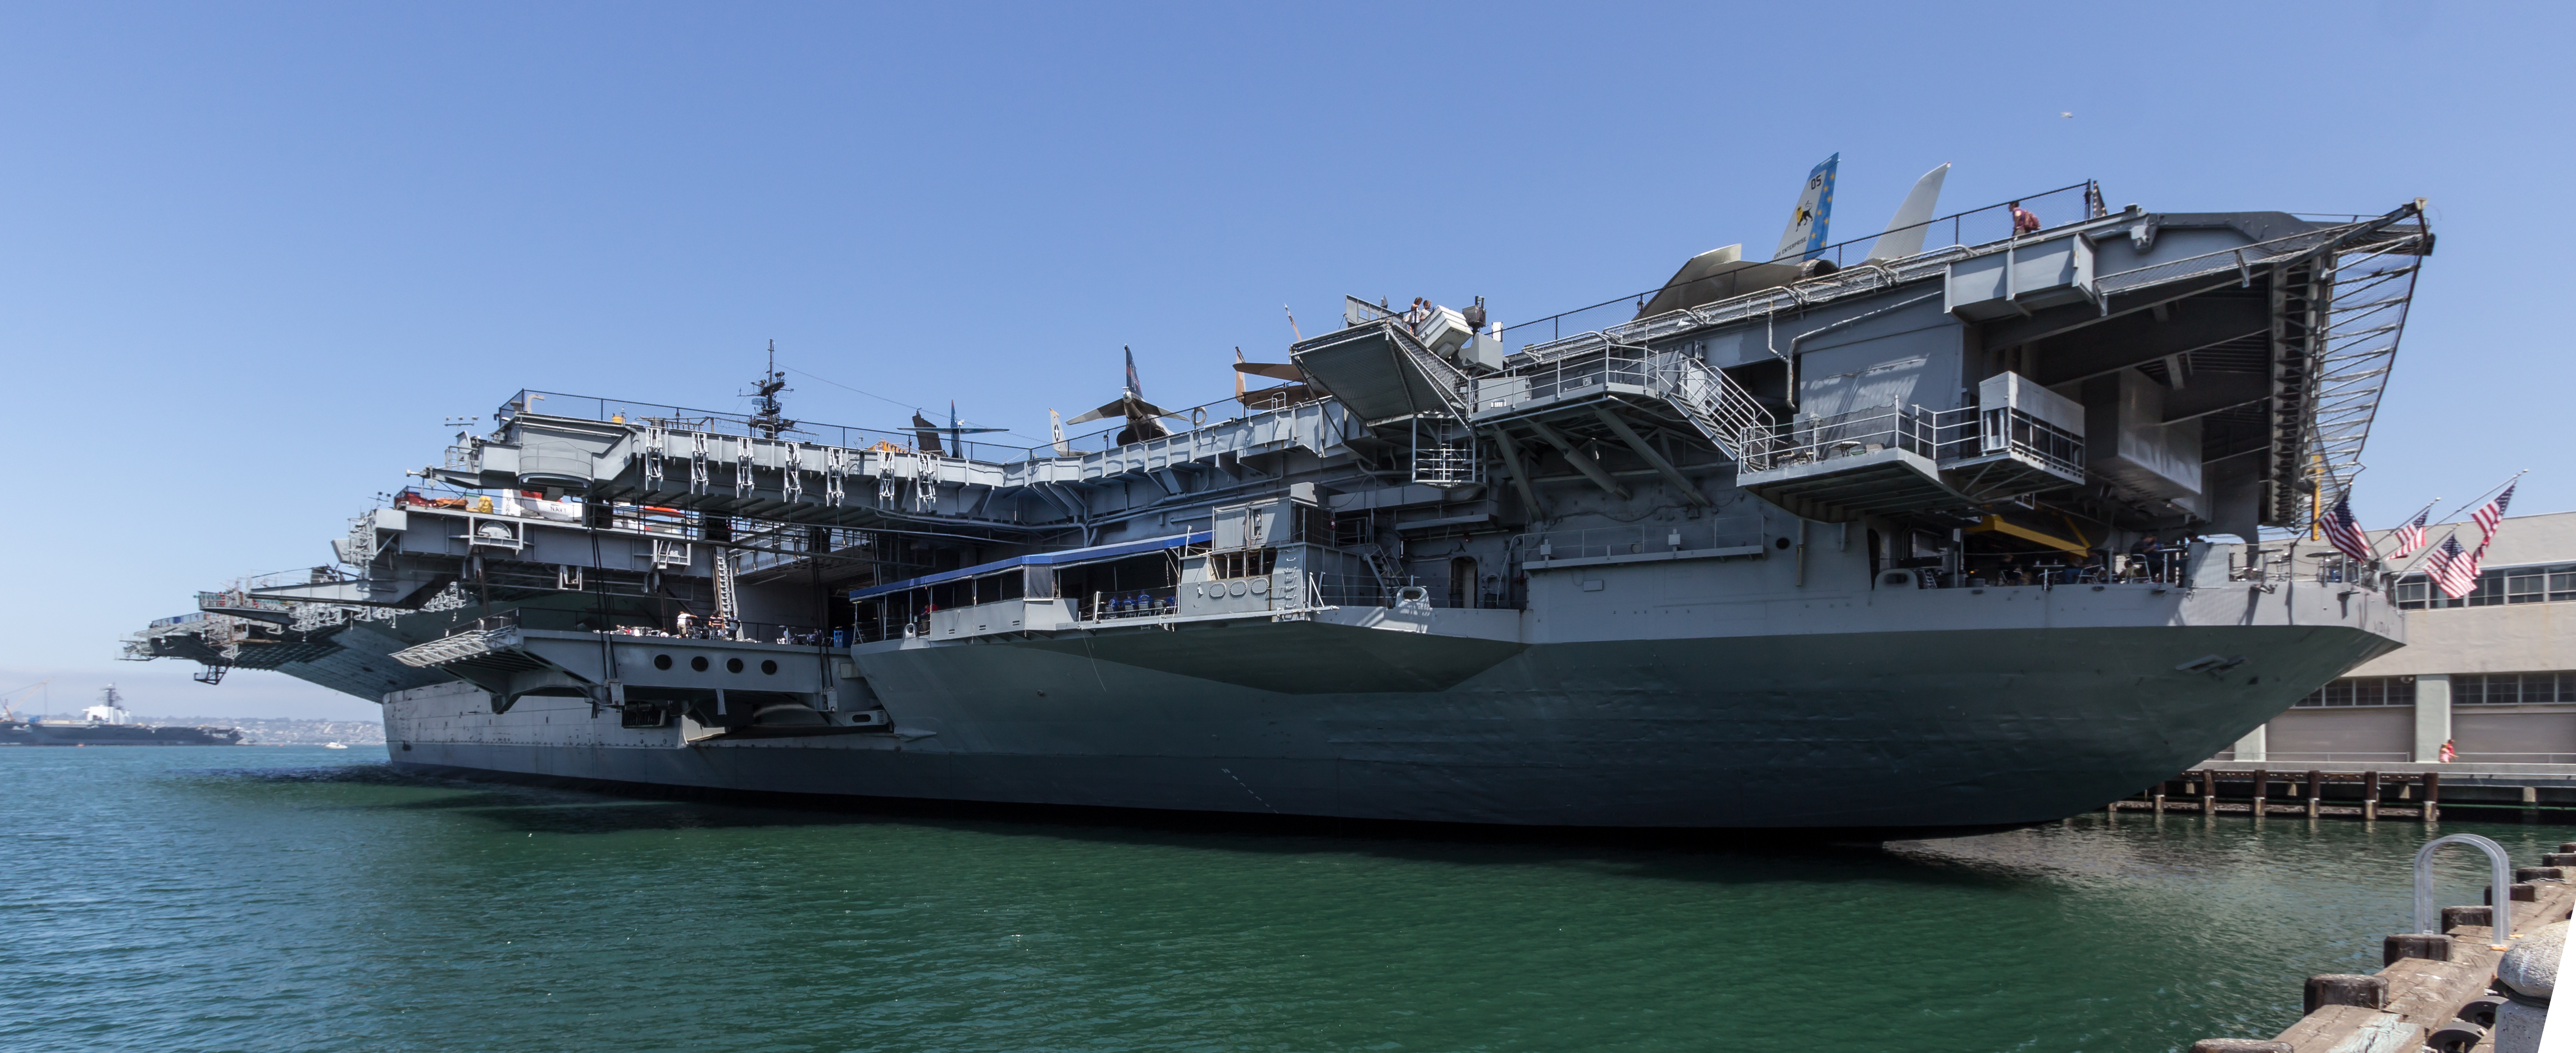 Live the adventure & honor the legend of the USS Midway with activities & fun for the whole family onboard! Voted #1